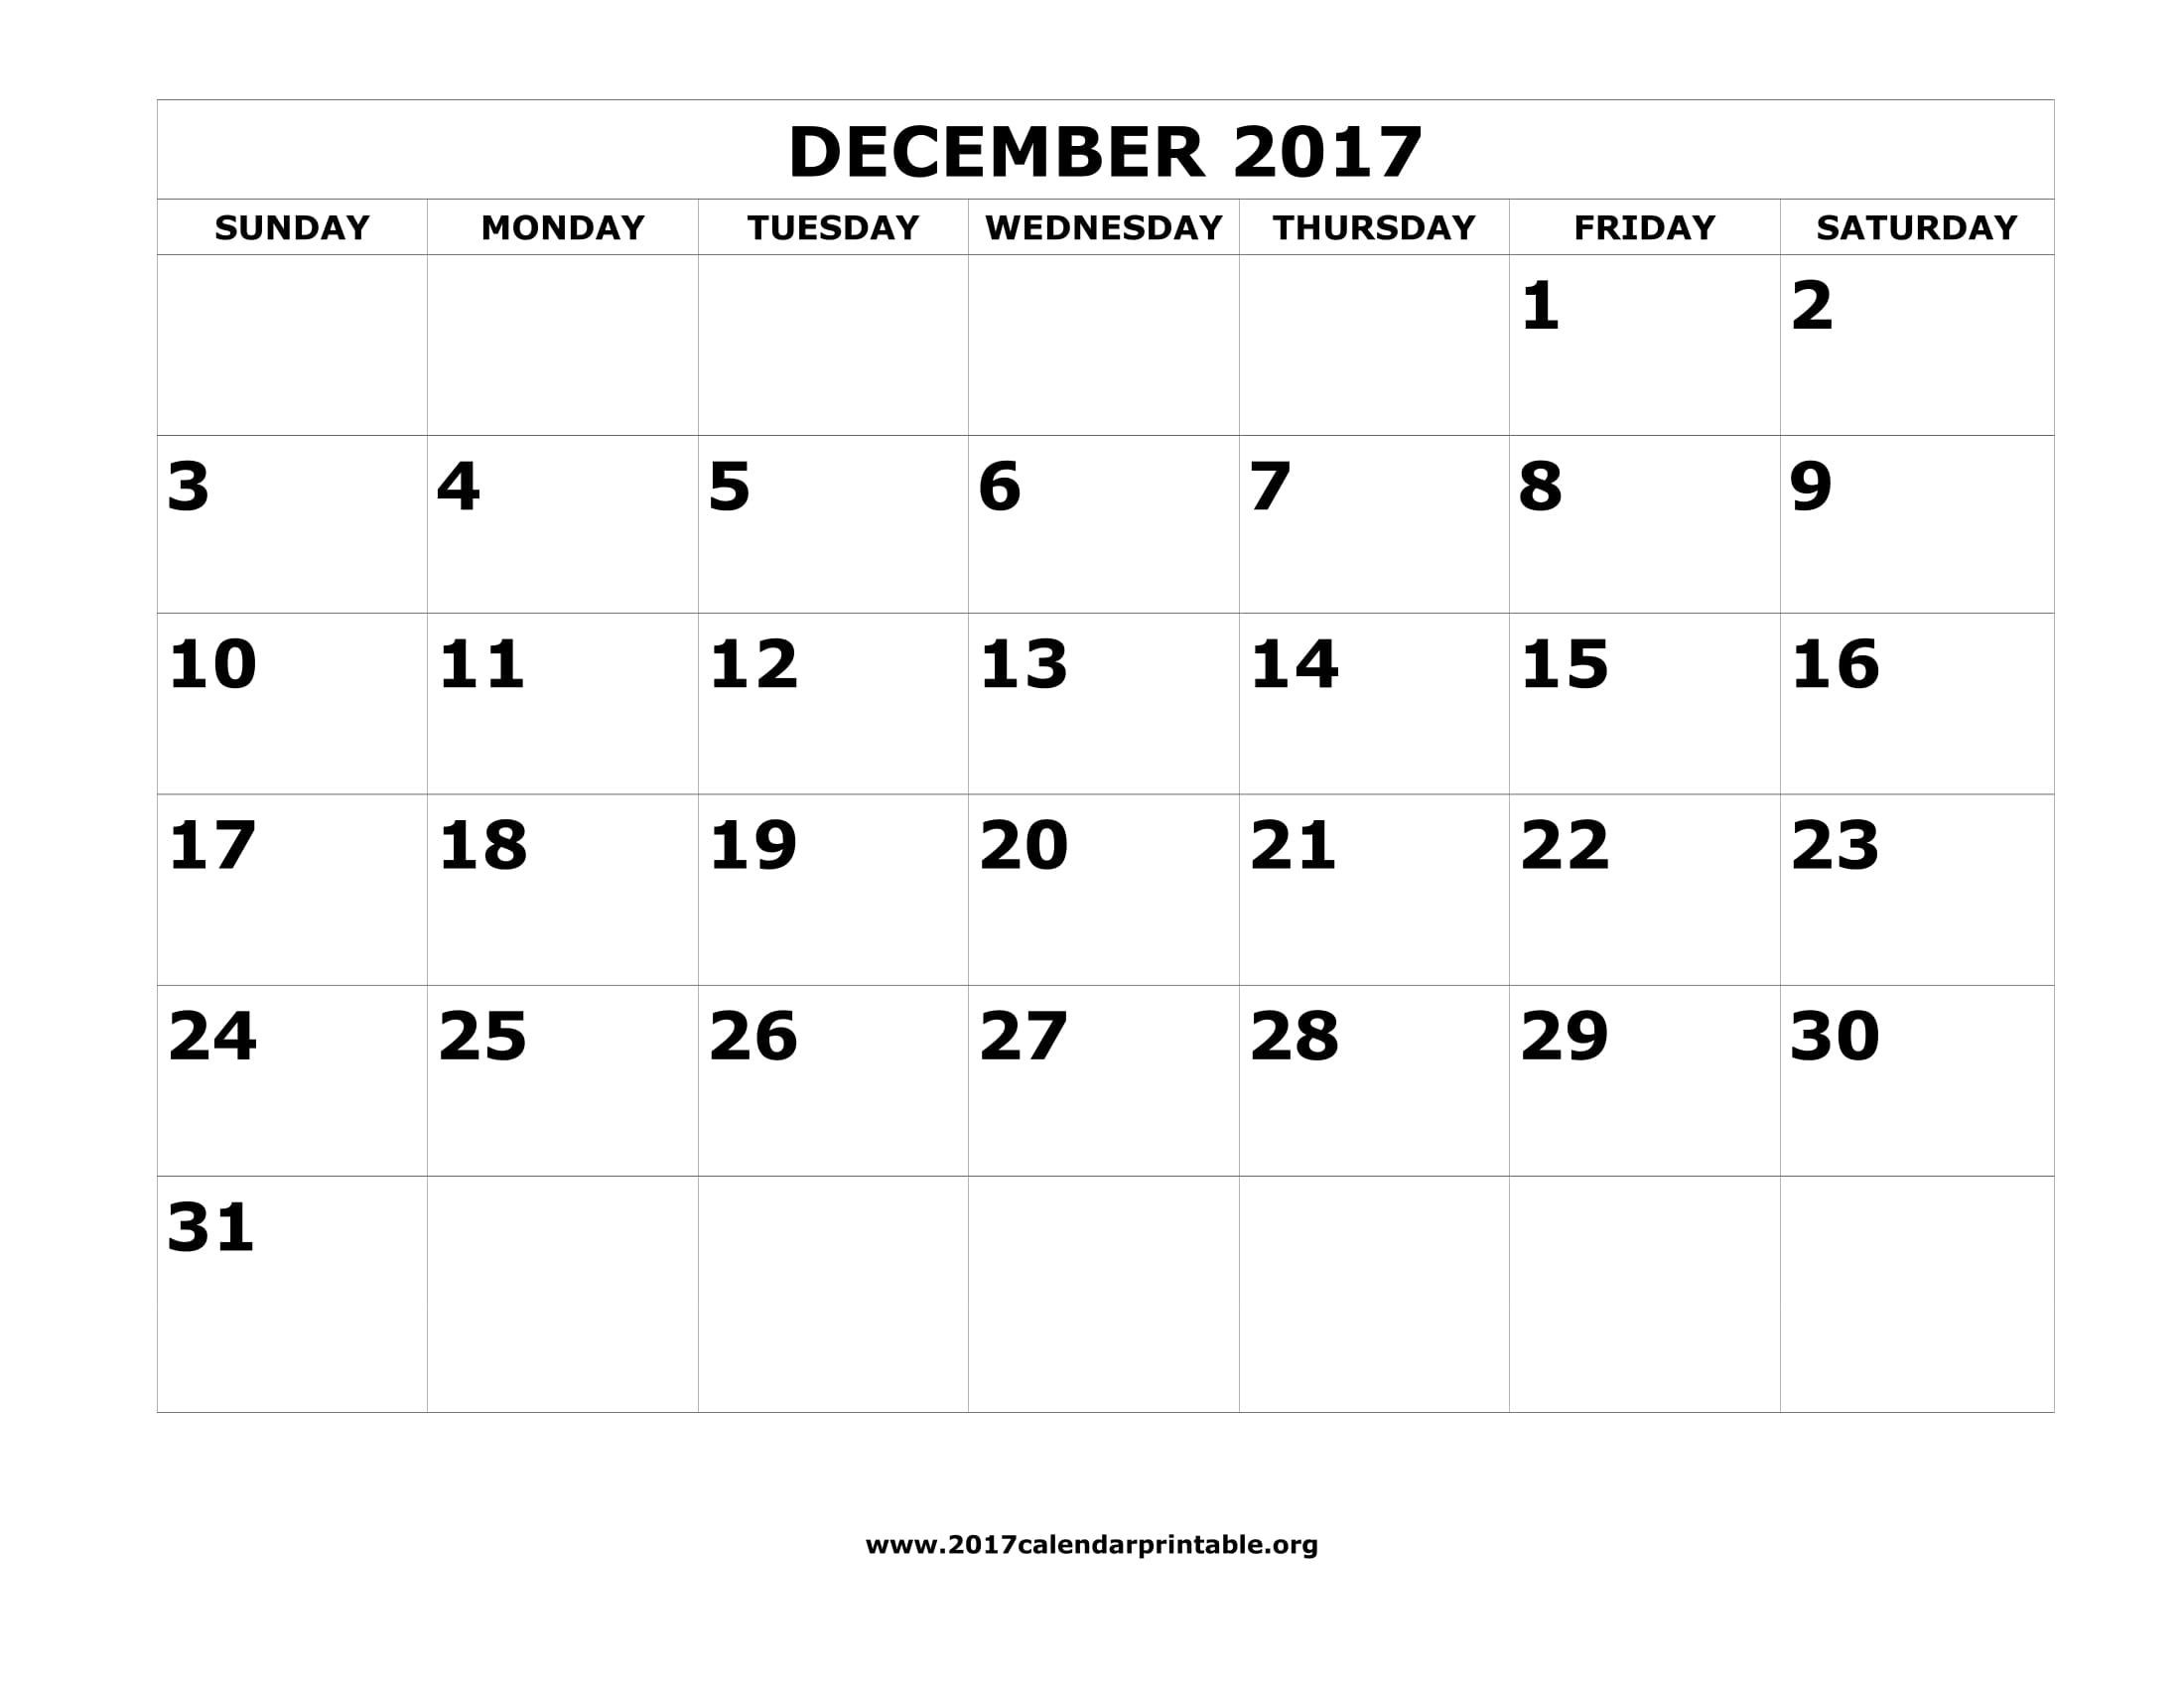 Download December 2017 Calendar Printable with federal holidays and week number as MS Word PDF and JPG in US letter paper format